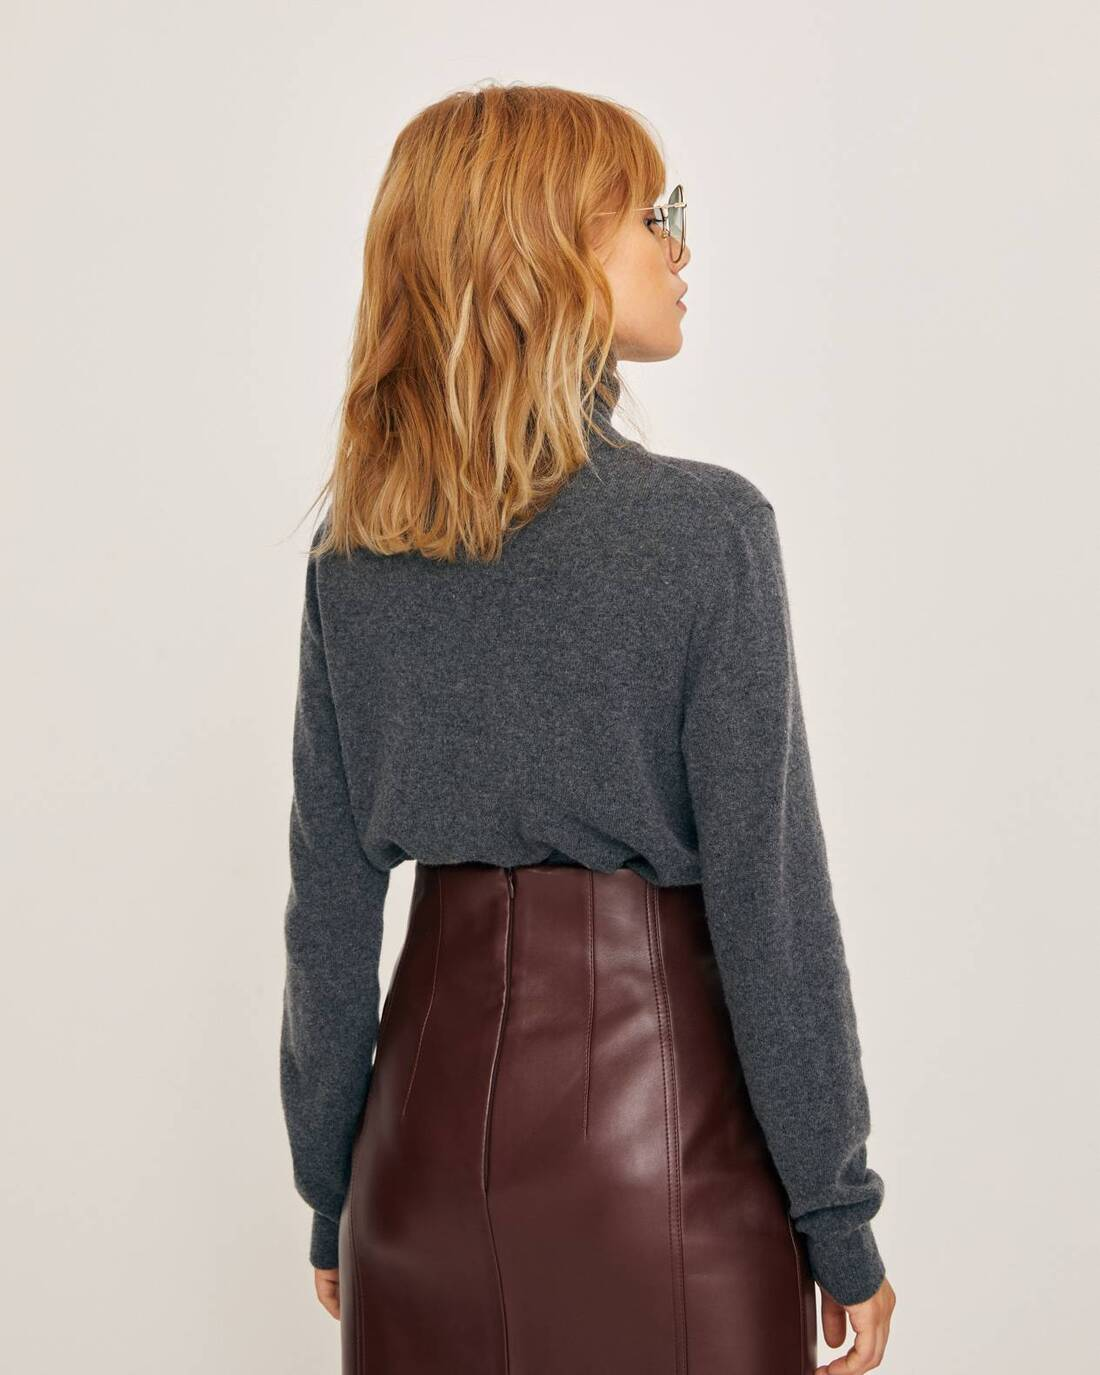 Loose-fit sweater with standing collar